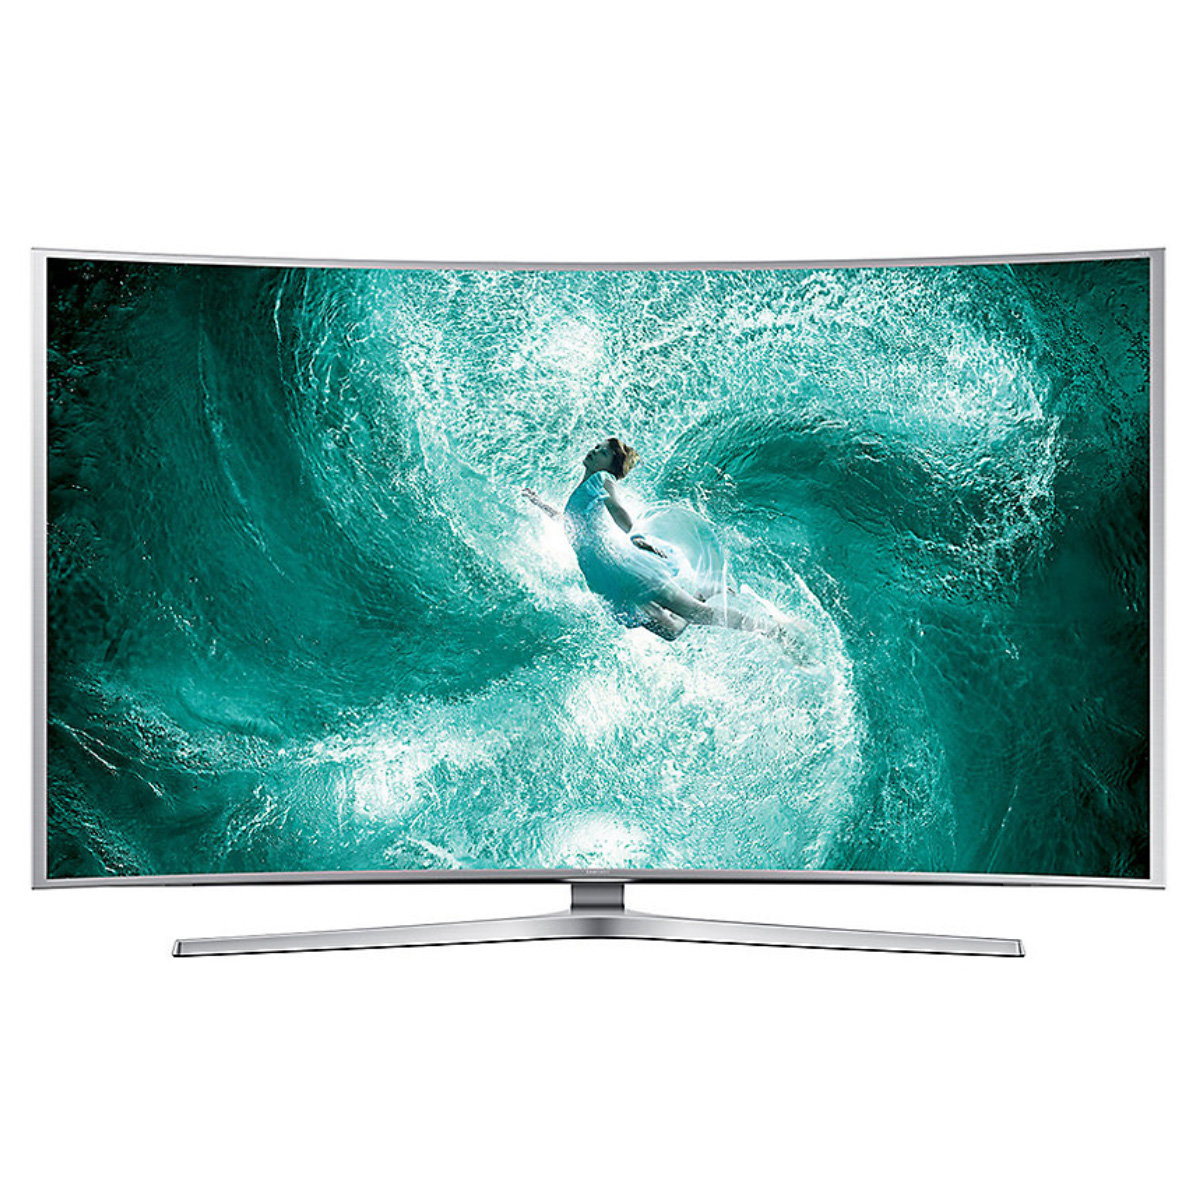 Samsung UA55JS9000 55 Inch 140cm Curved SUHD 3D Smart TV With Tizen OS